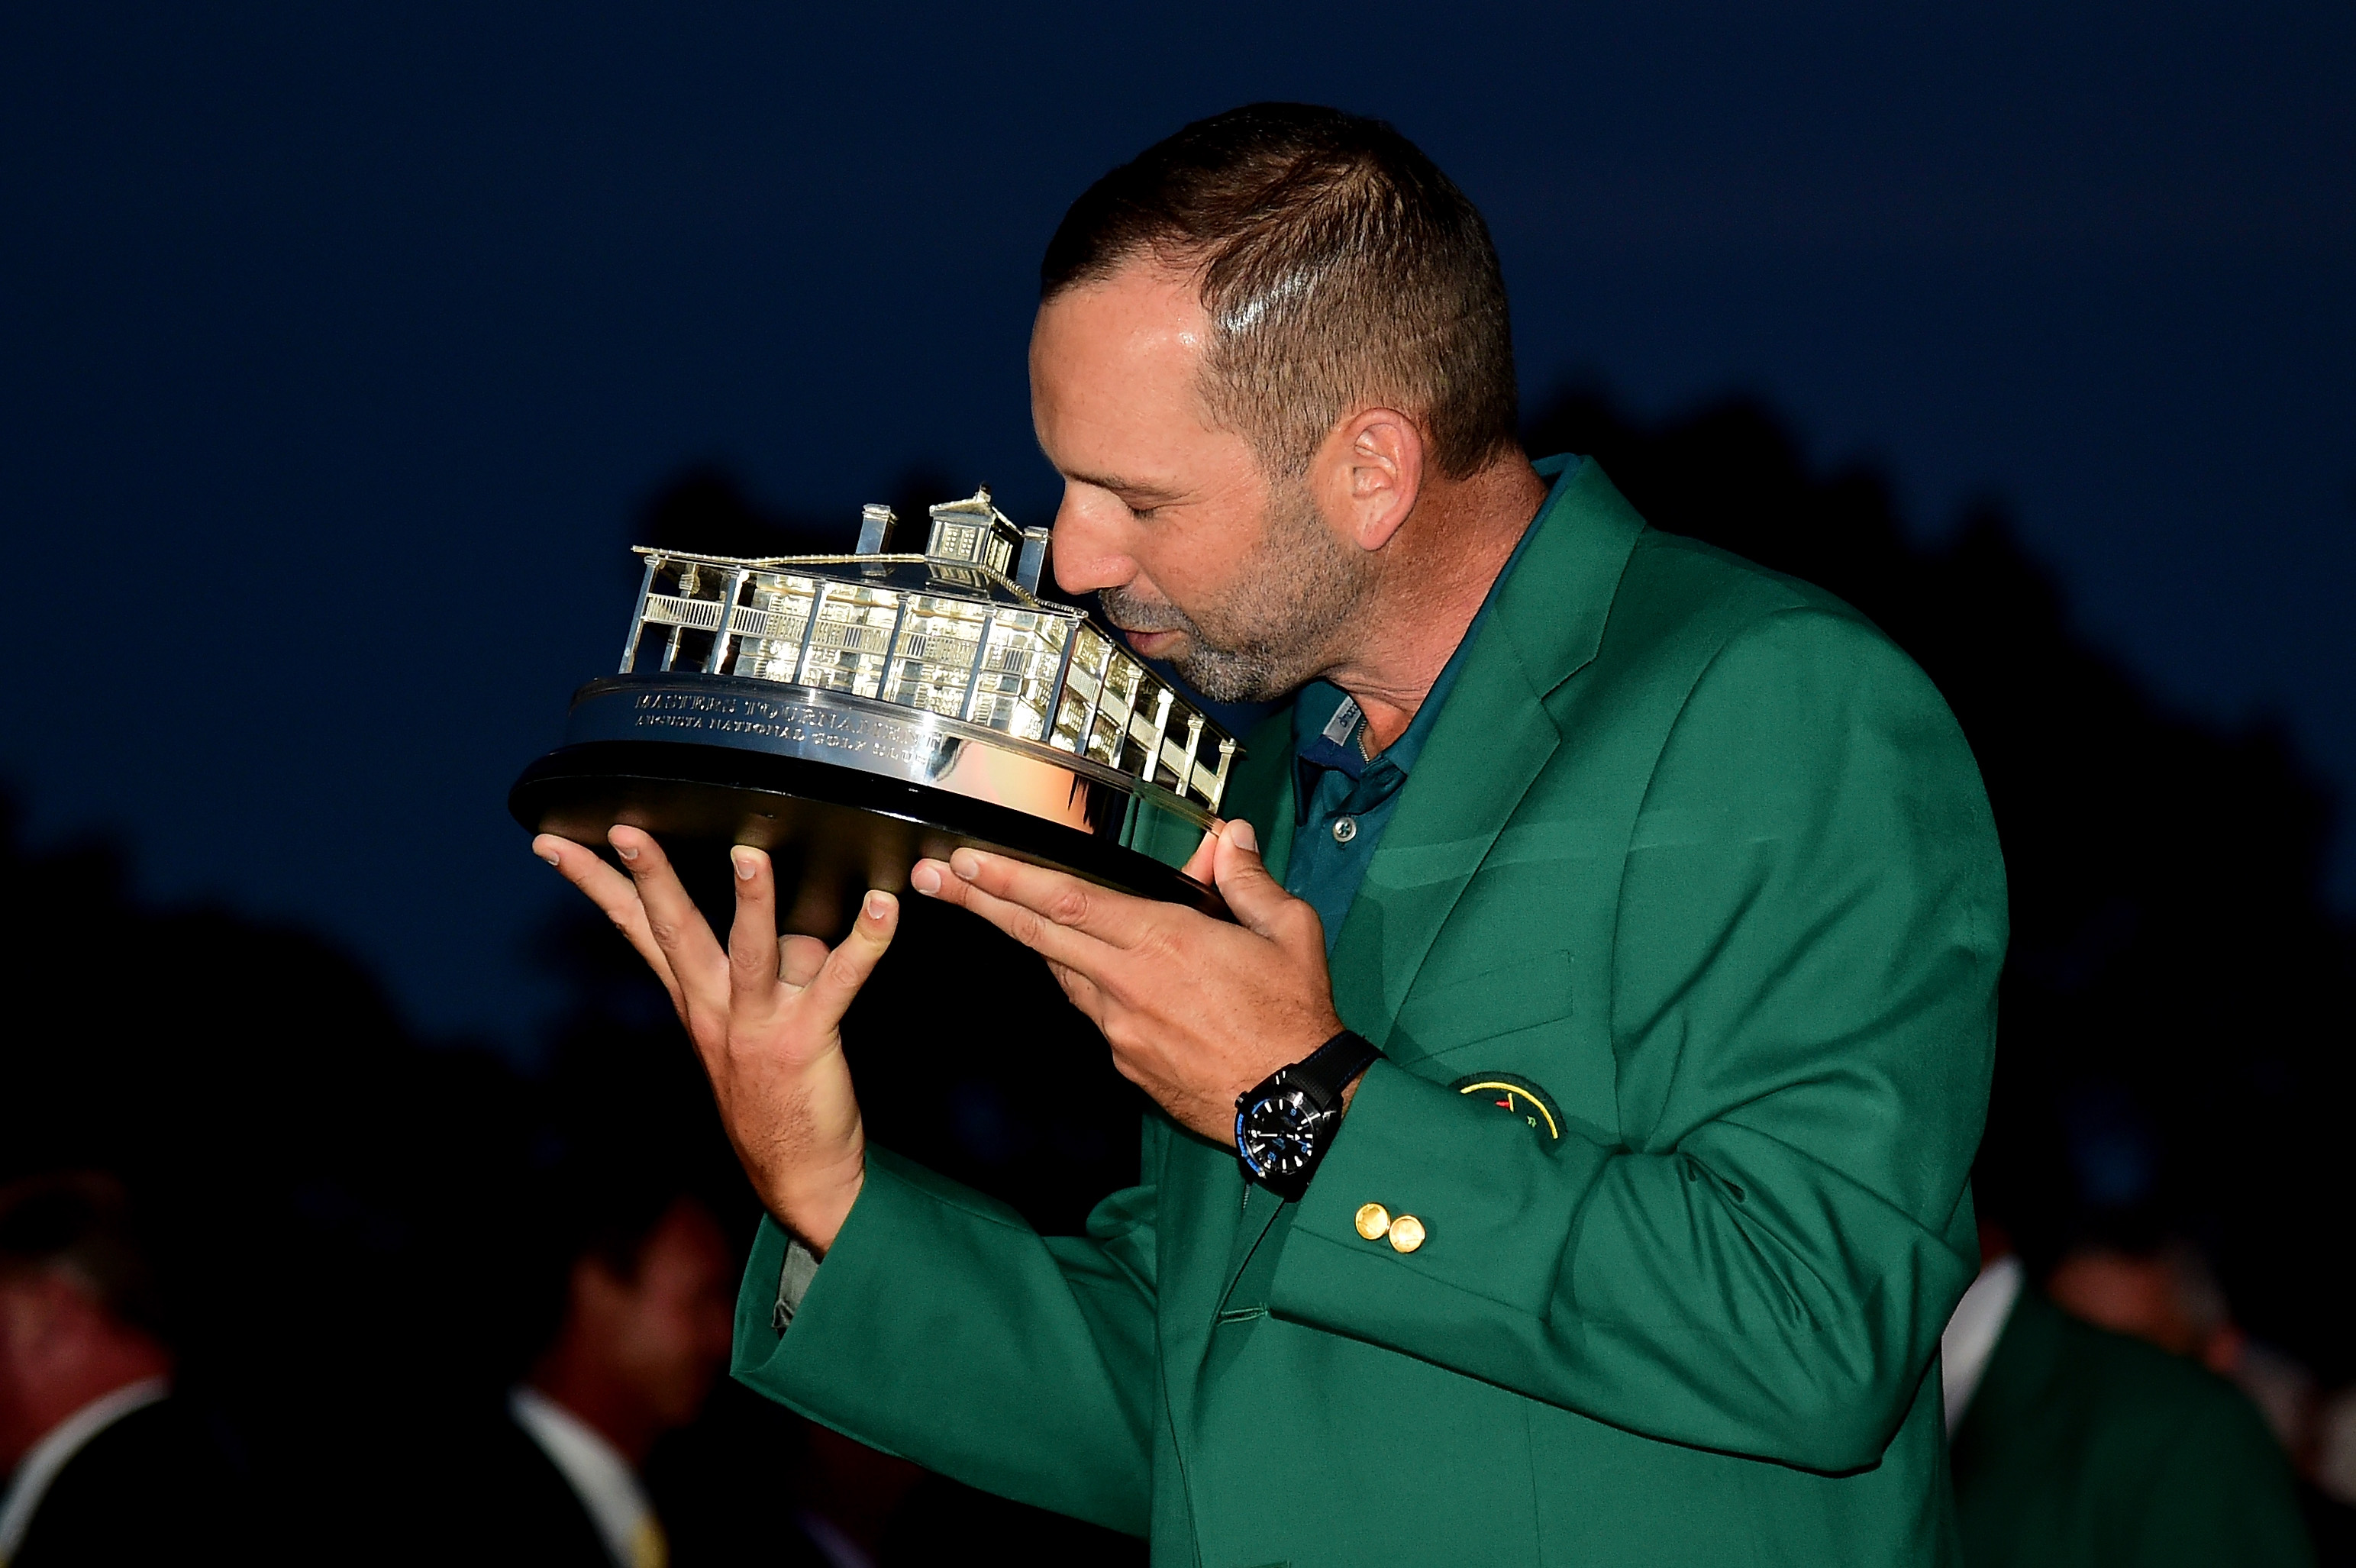 Garcia Takes Major Title At Last With Masters Win Article cover photo